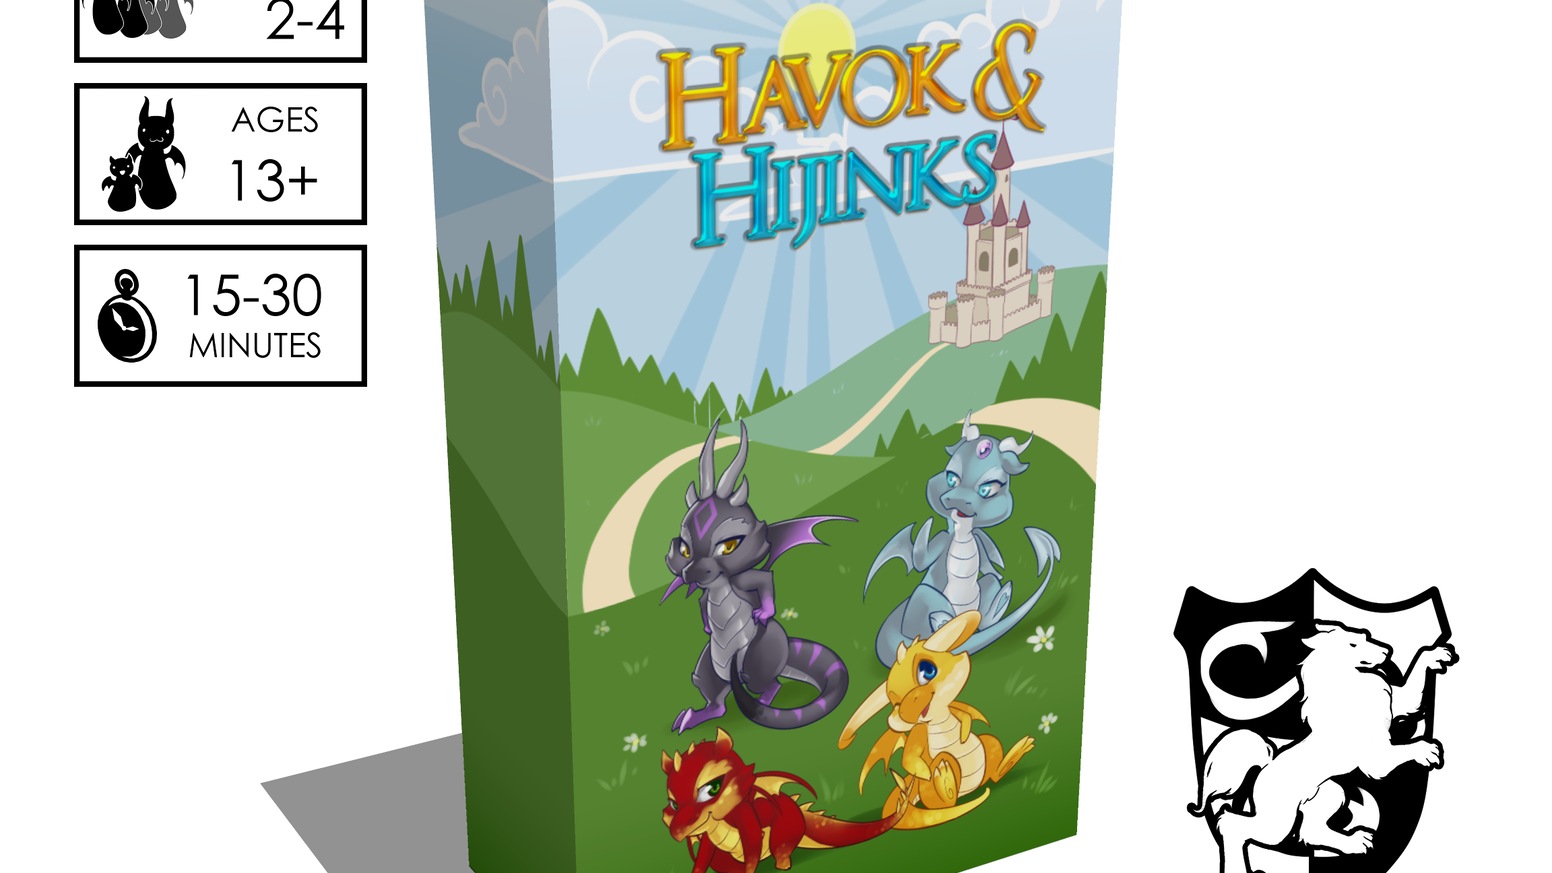 Havok & Hijinks™ is a family-friendly, light strategy card game featuring cute, humorous dragons competing for treasure.